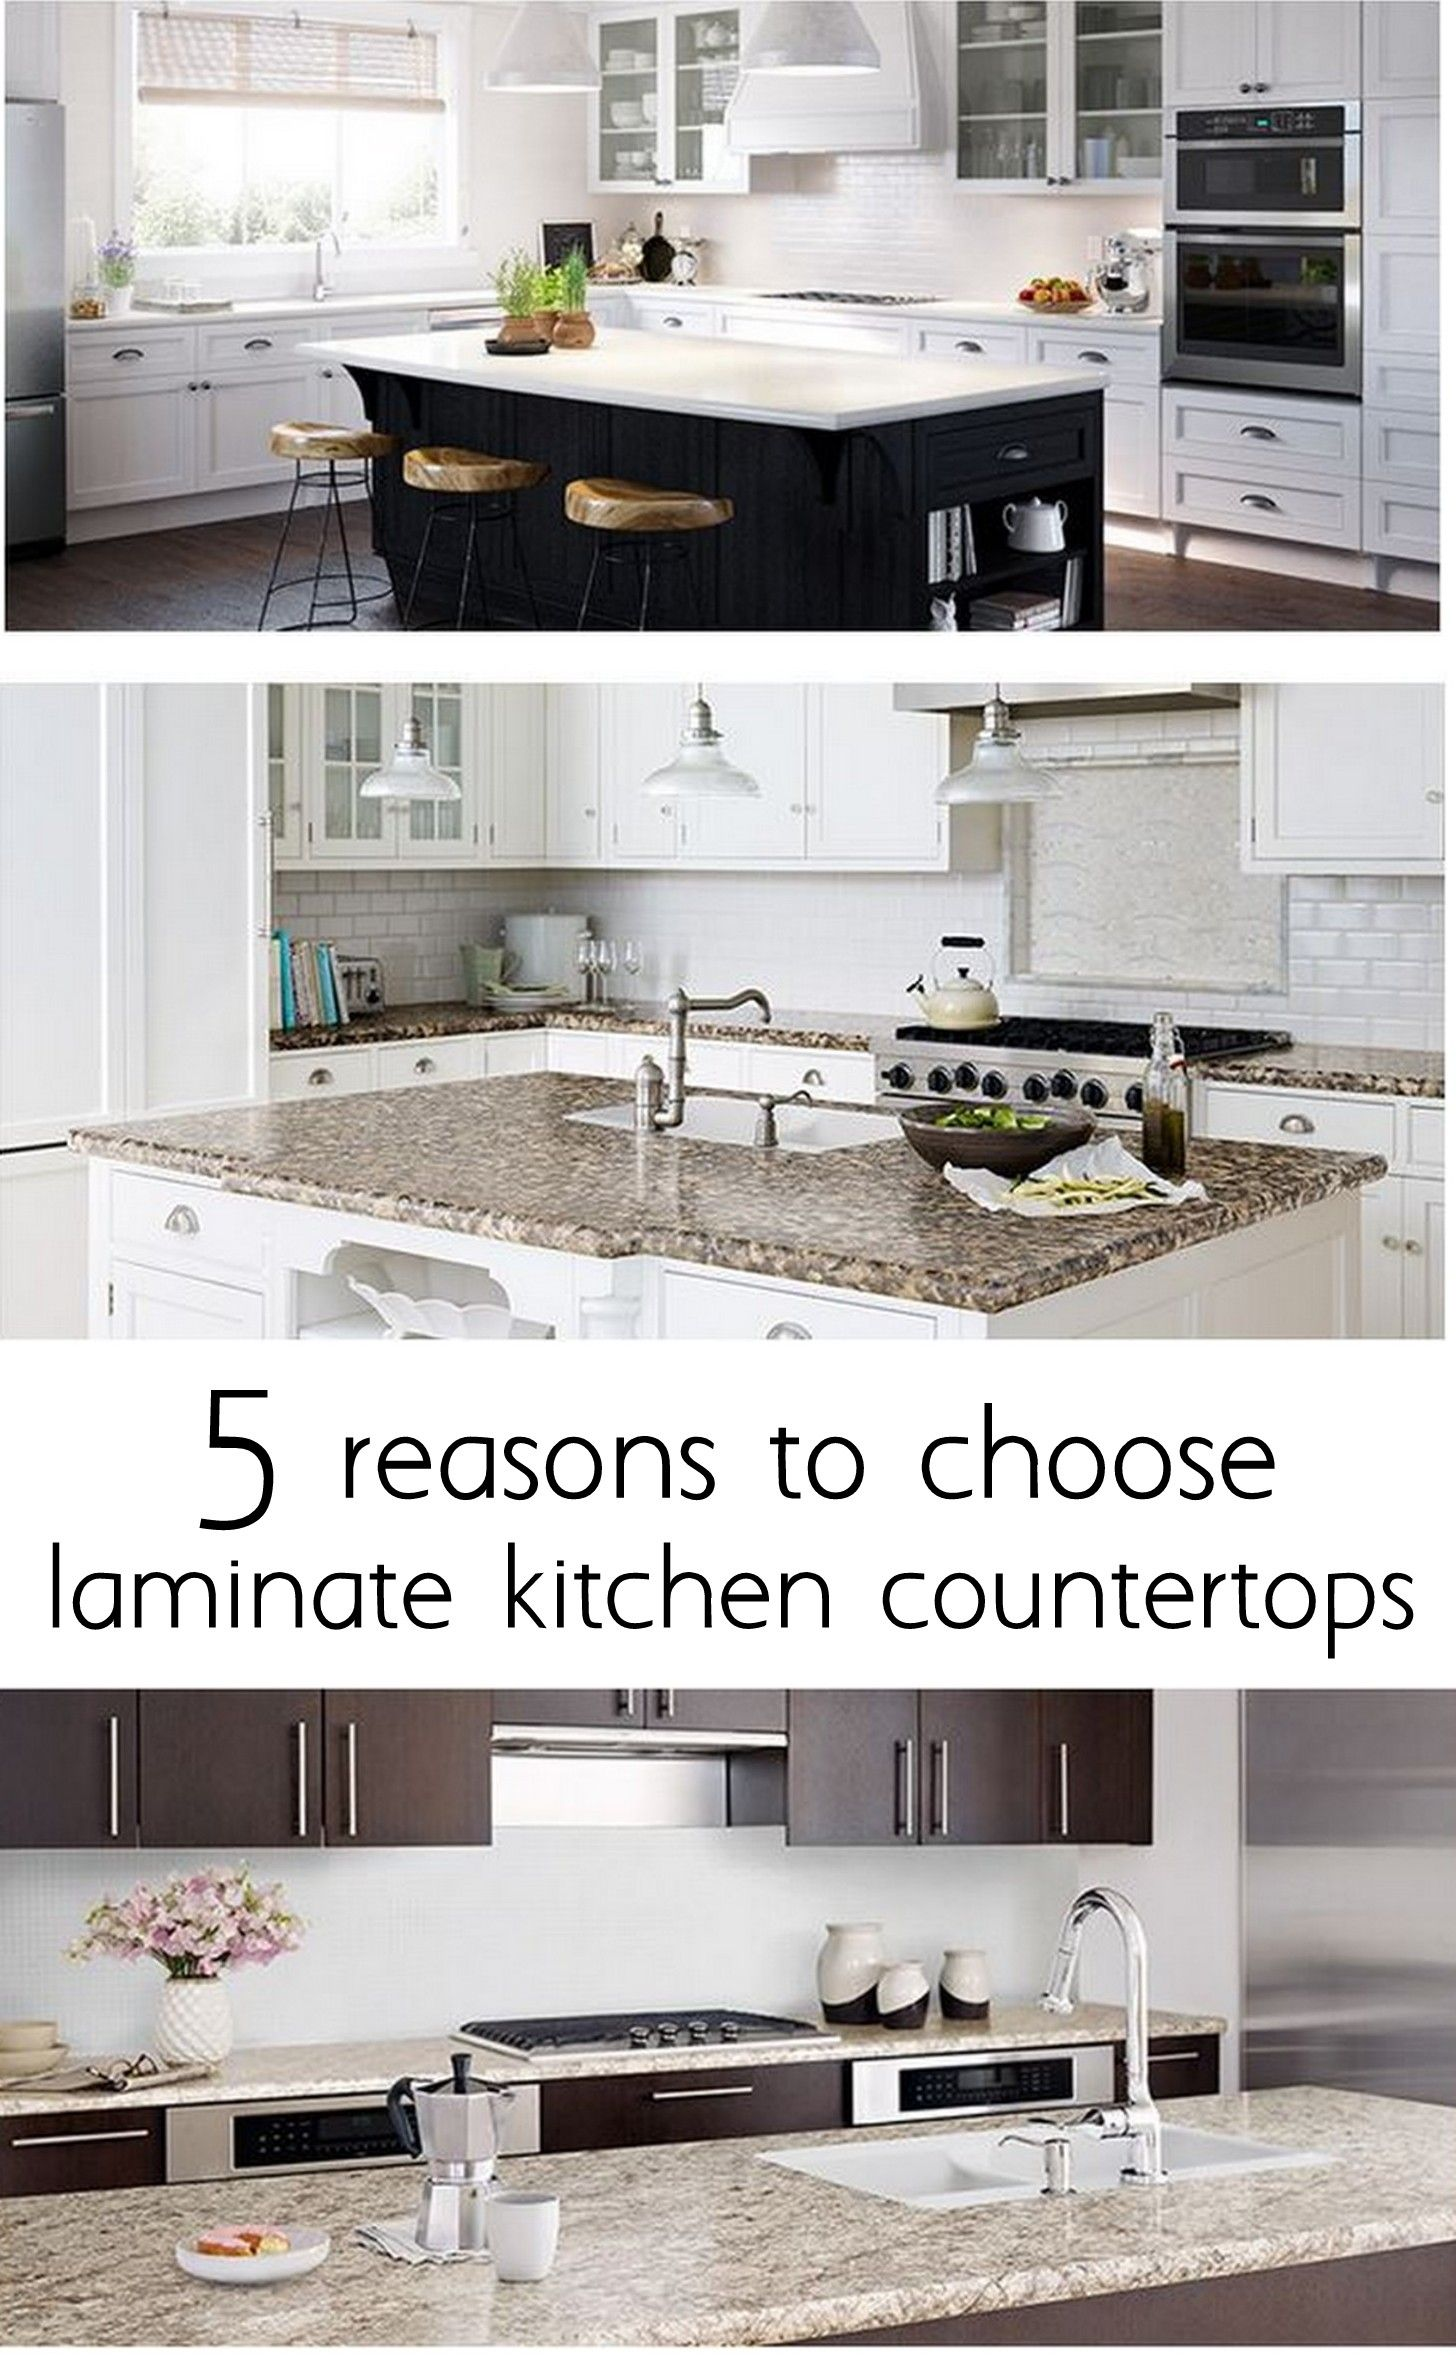 Kitchen Countertops Design Pinterest Reasons 43to 43choose 43laminate 43kitchen 43countertops I Like The